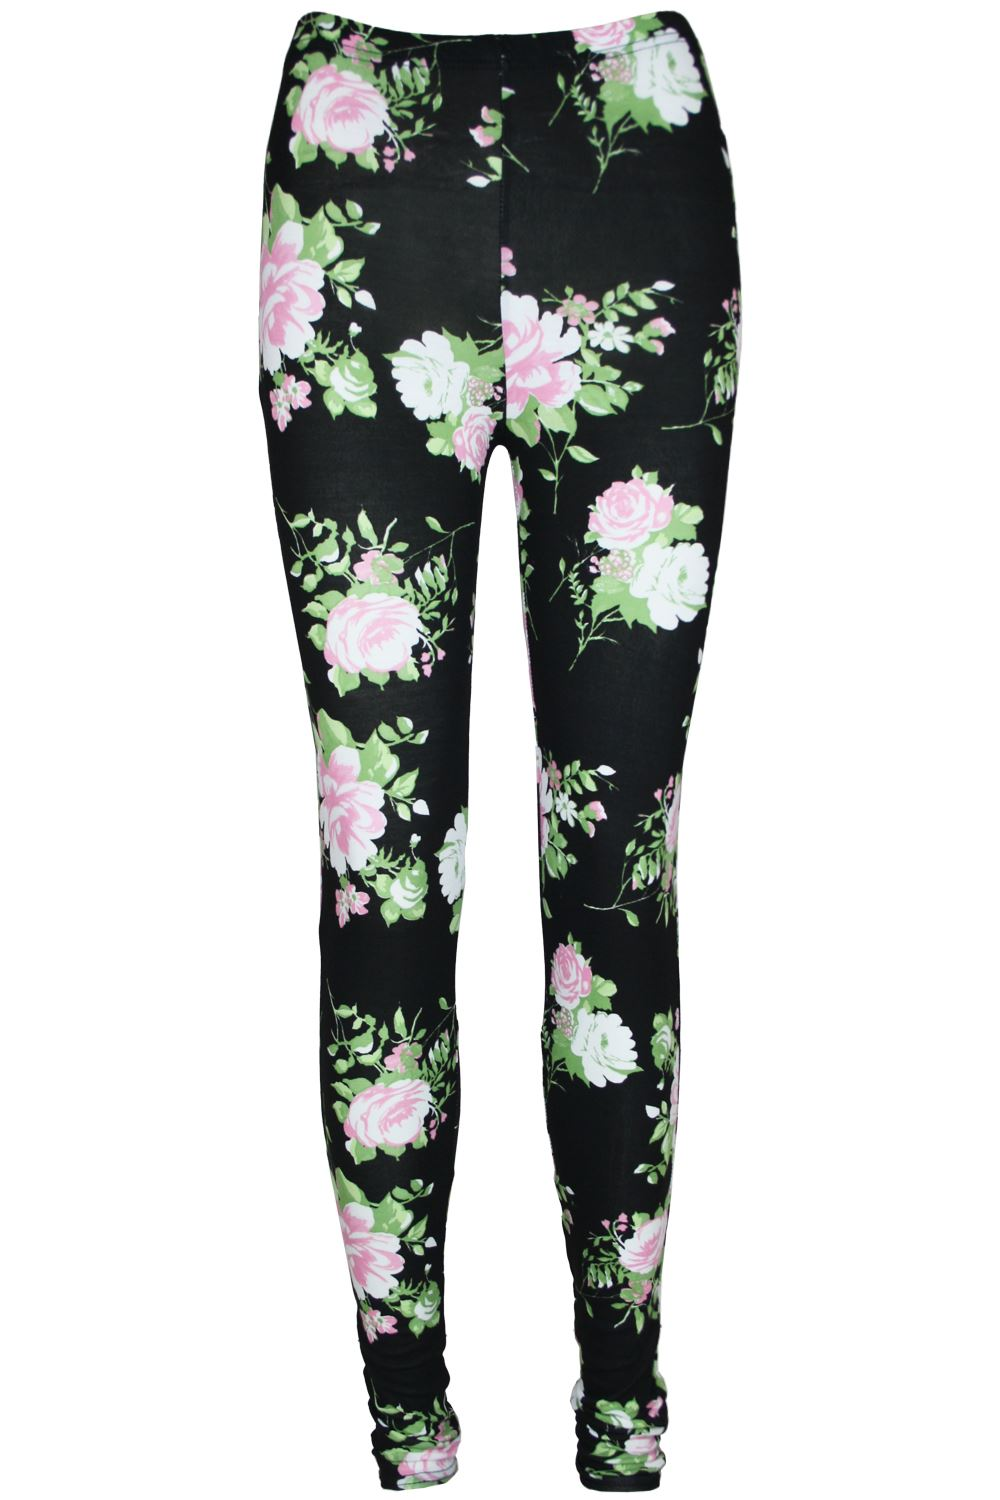 You searched for: floral leggings! Etsy is the home to thousands of handmade, vintage, and one-of-a-kind products and gifts related to your search. No matter what you're looking for or where you are in the world, our global marketplace of sellers can help you find unique and affordable options. Let's get started!